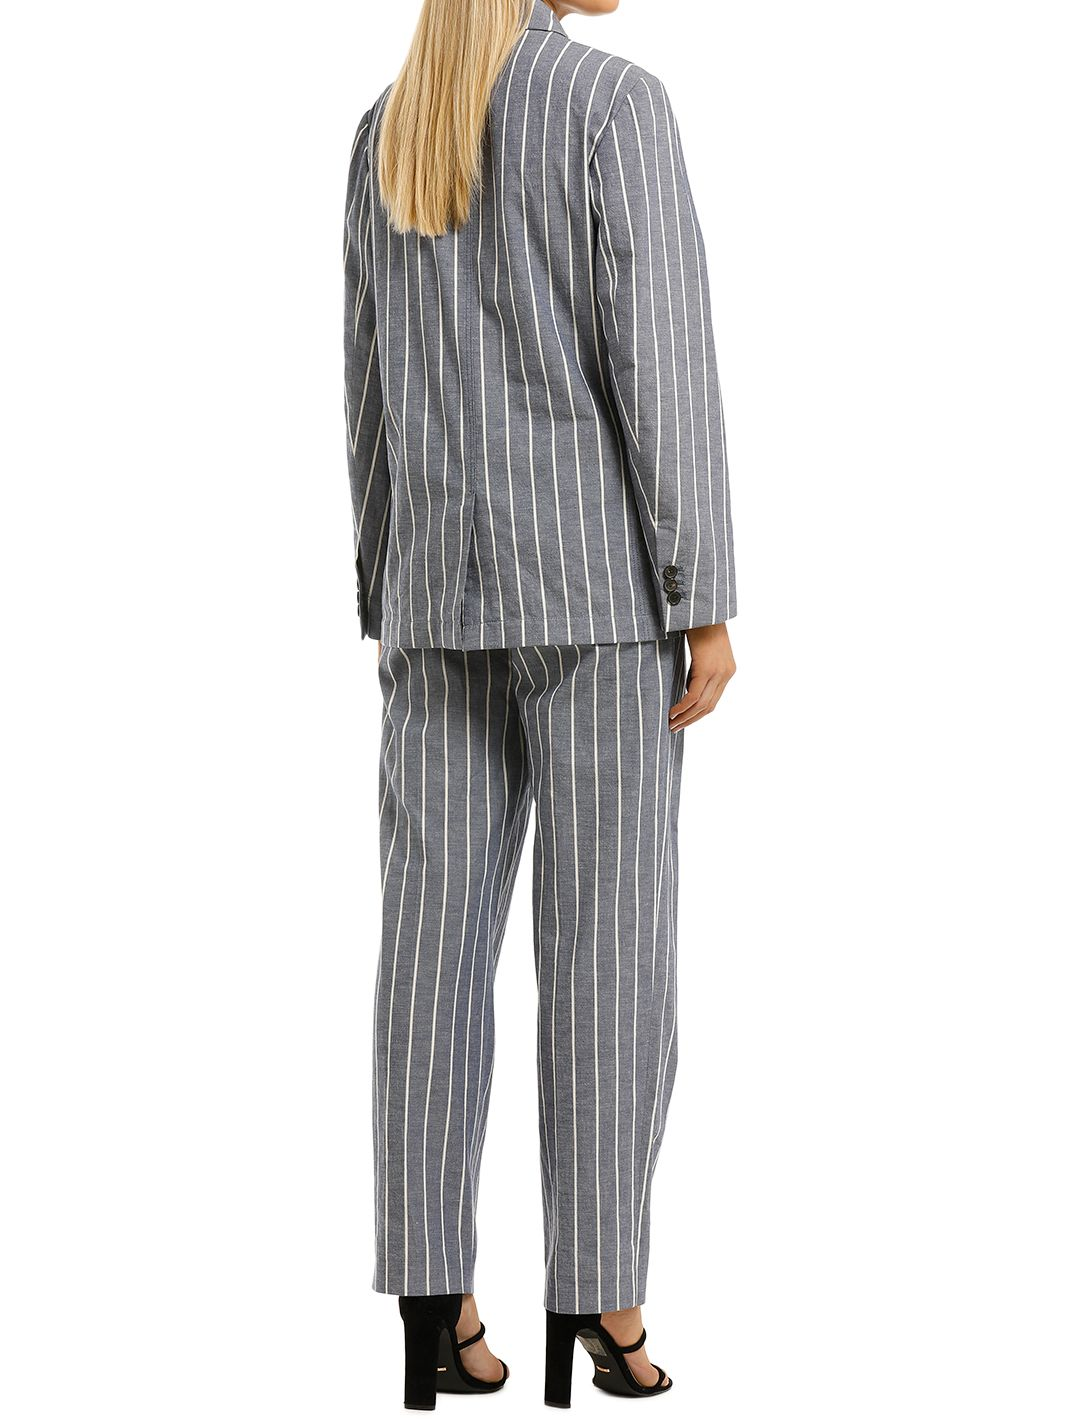 Laquintane-Double-Breasted-Jacket-and-Pant-Set-Indigo-Stripe-Back